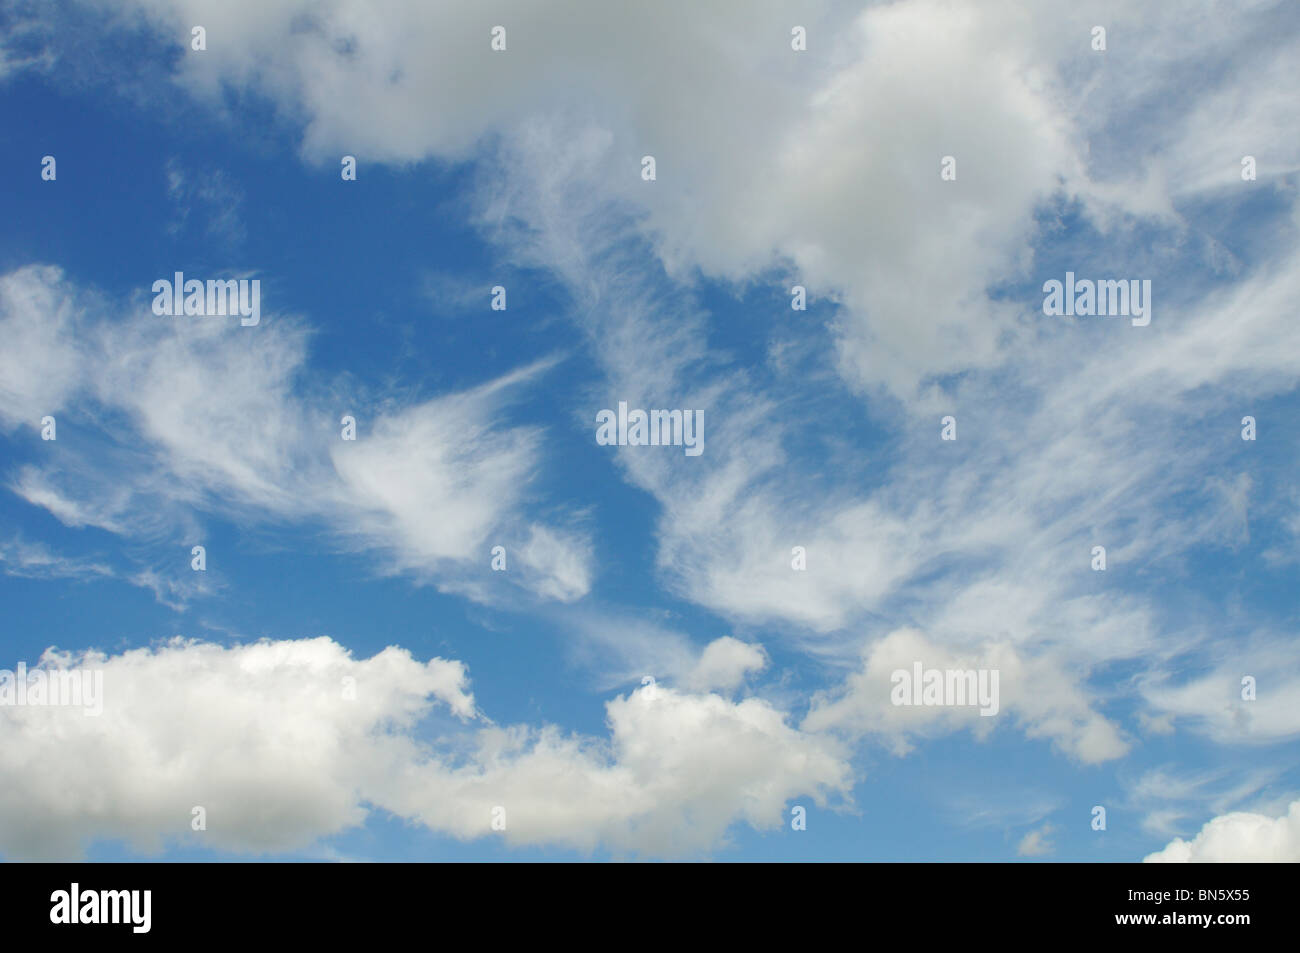 Sunny blue sky with clouds. - Stock Image